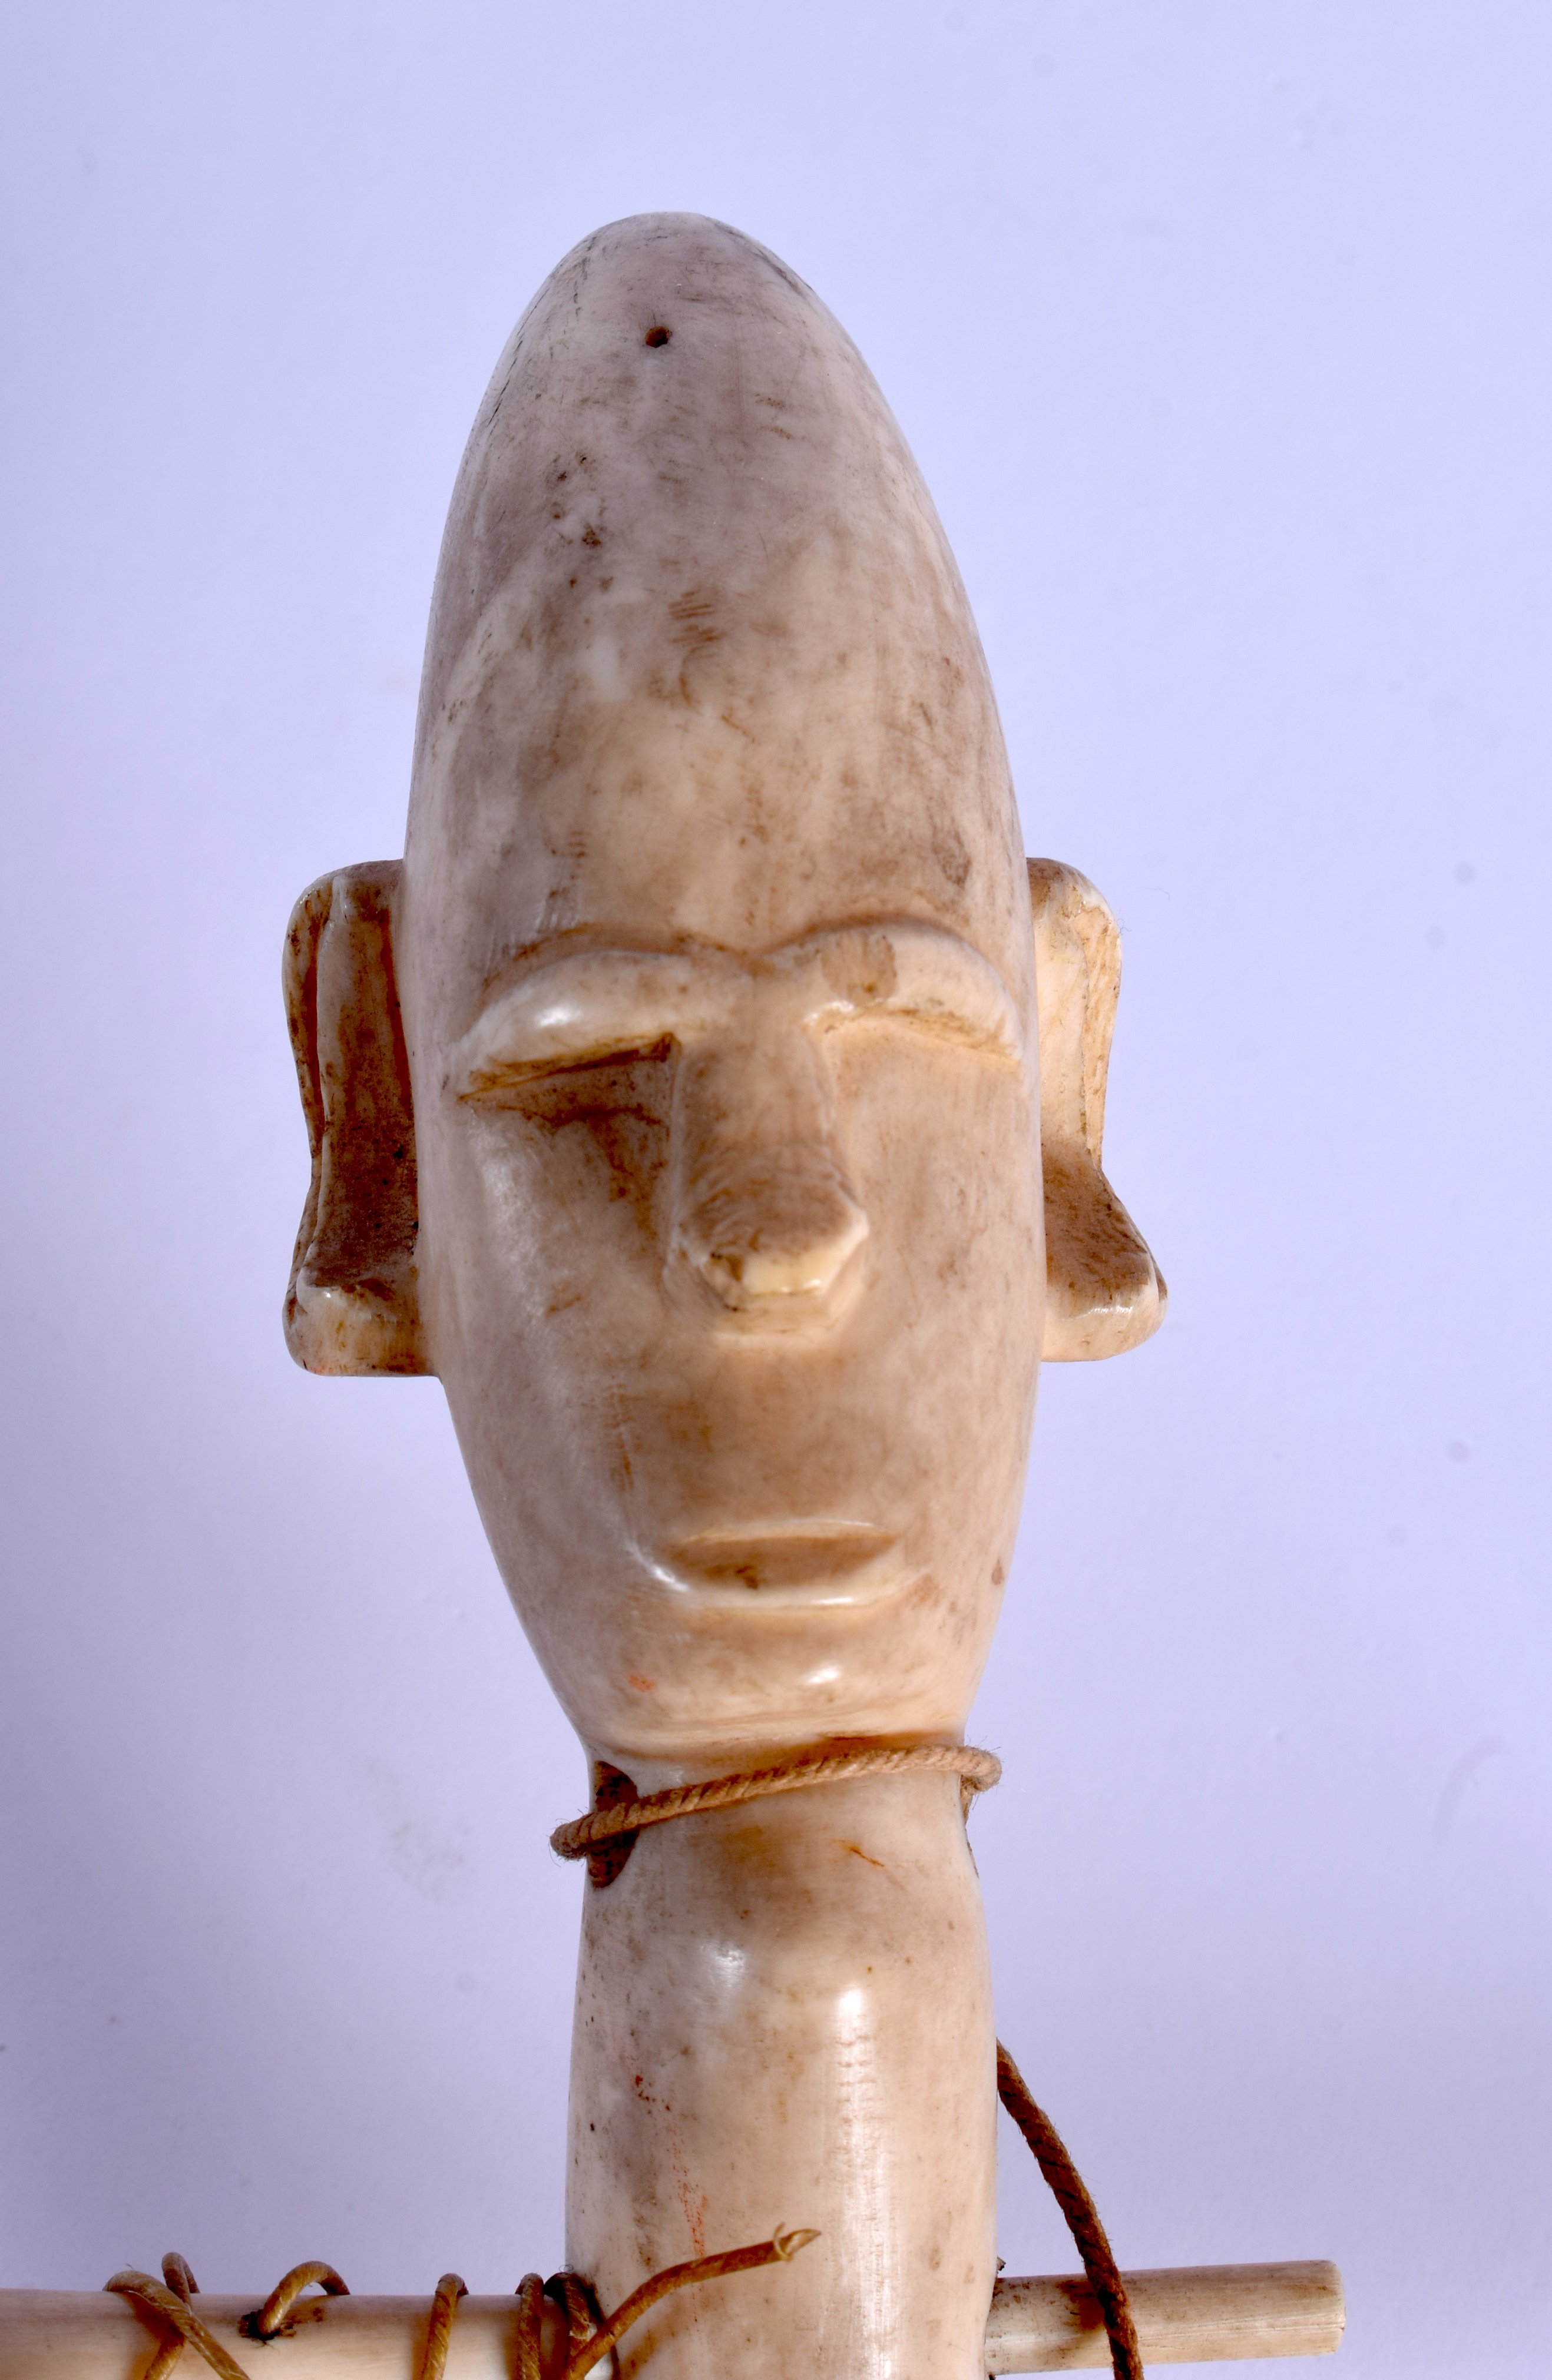 AN EARLY 20TH CENTURY AFRICAN CARVED IVORY AND WOOD INSTRUMENT of figural form. 54 cm long. - Image 3 of 3